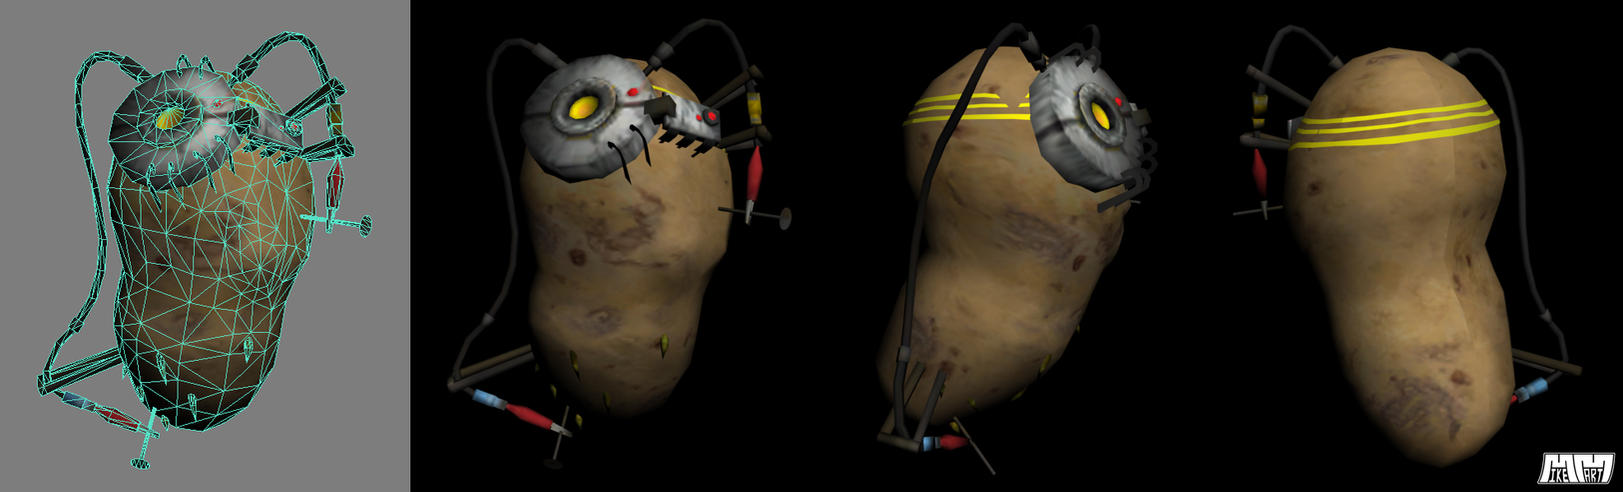 PotatOS W.I.P. by billybob884